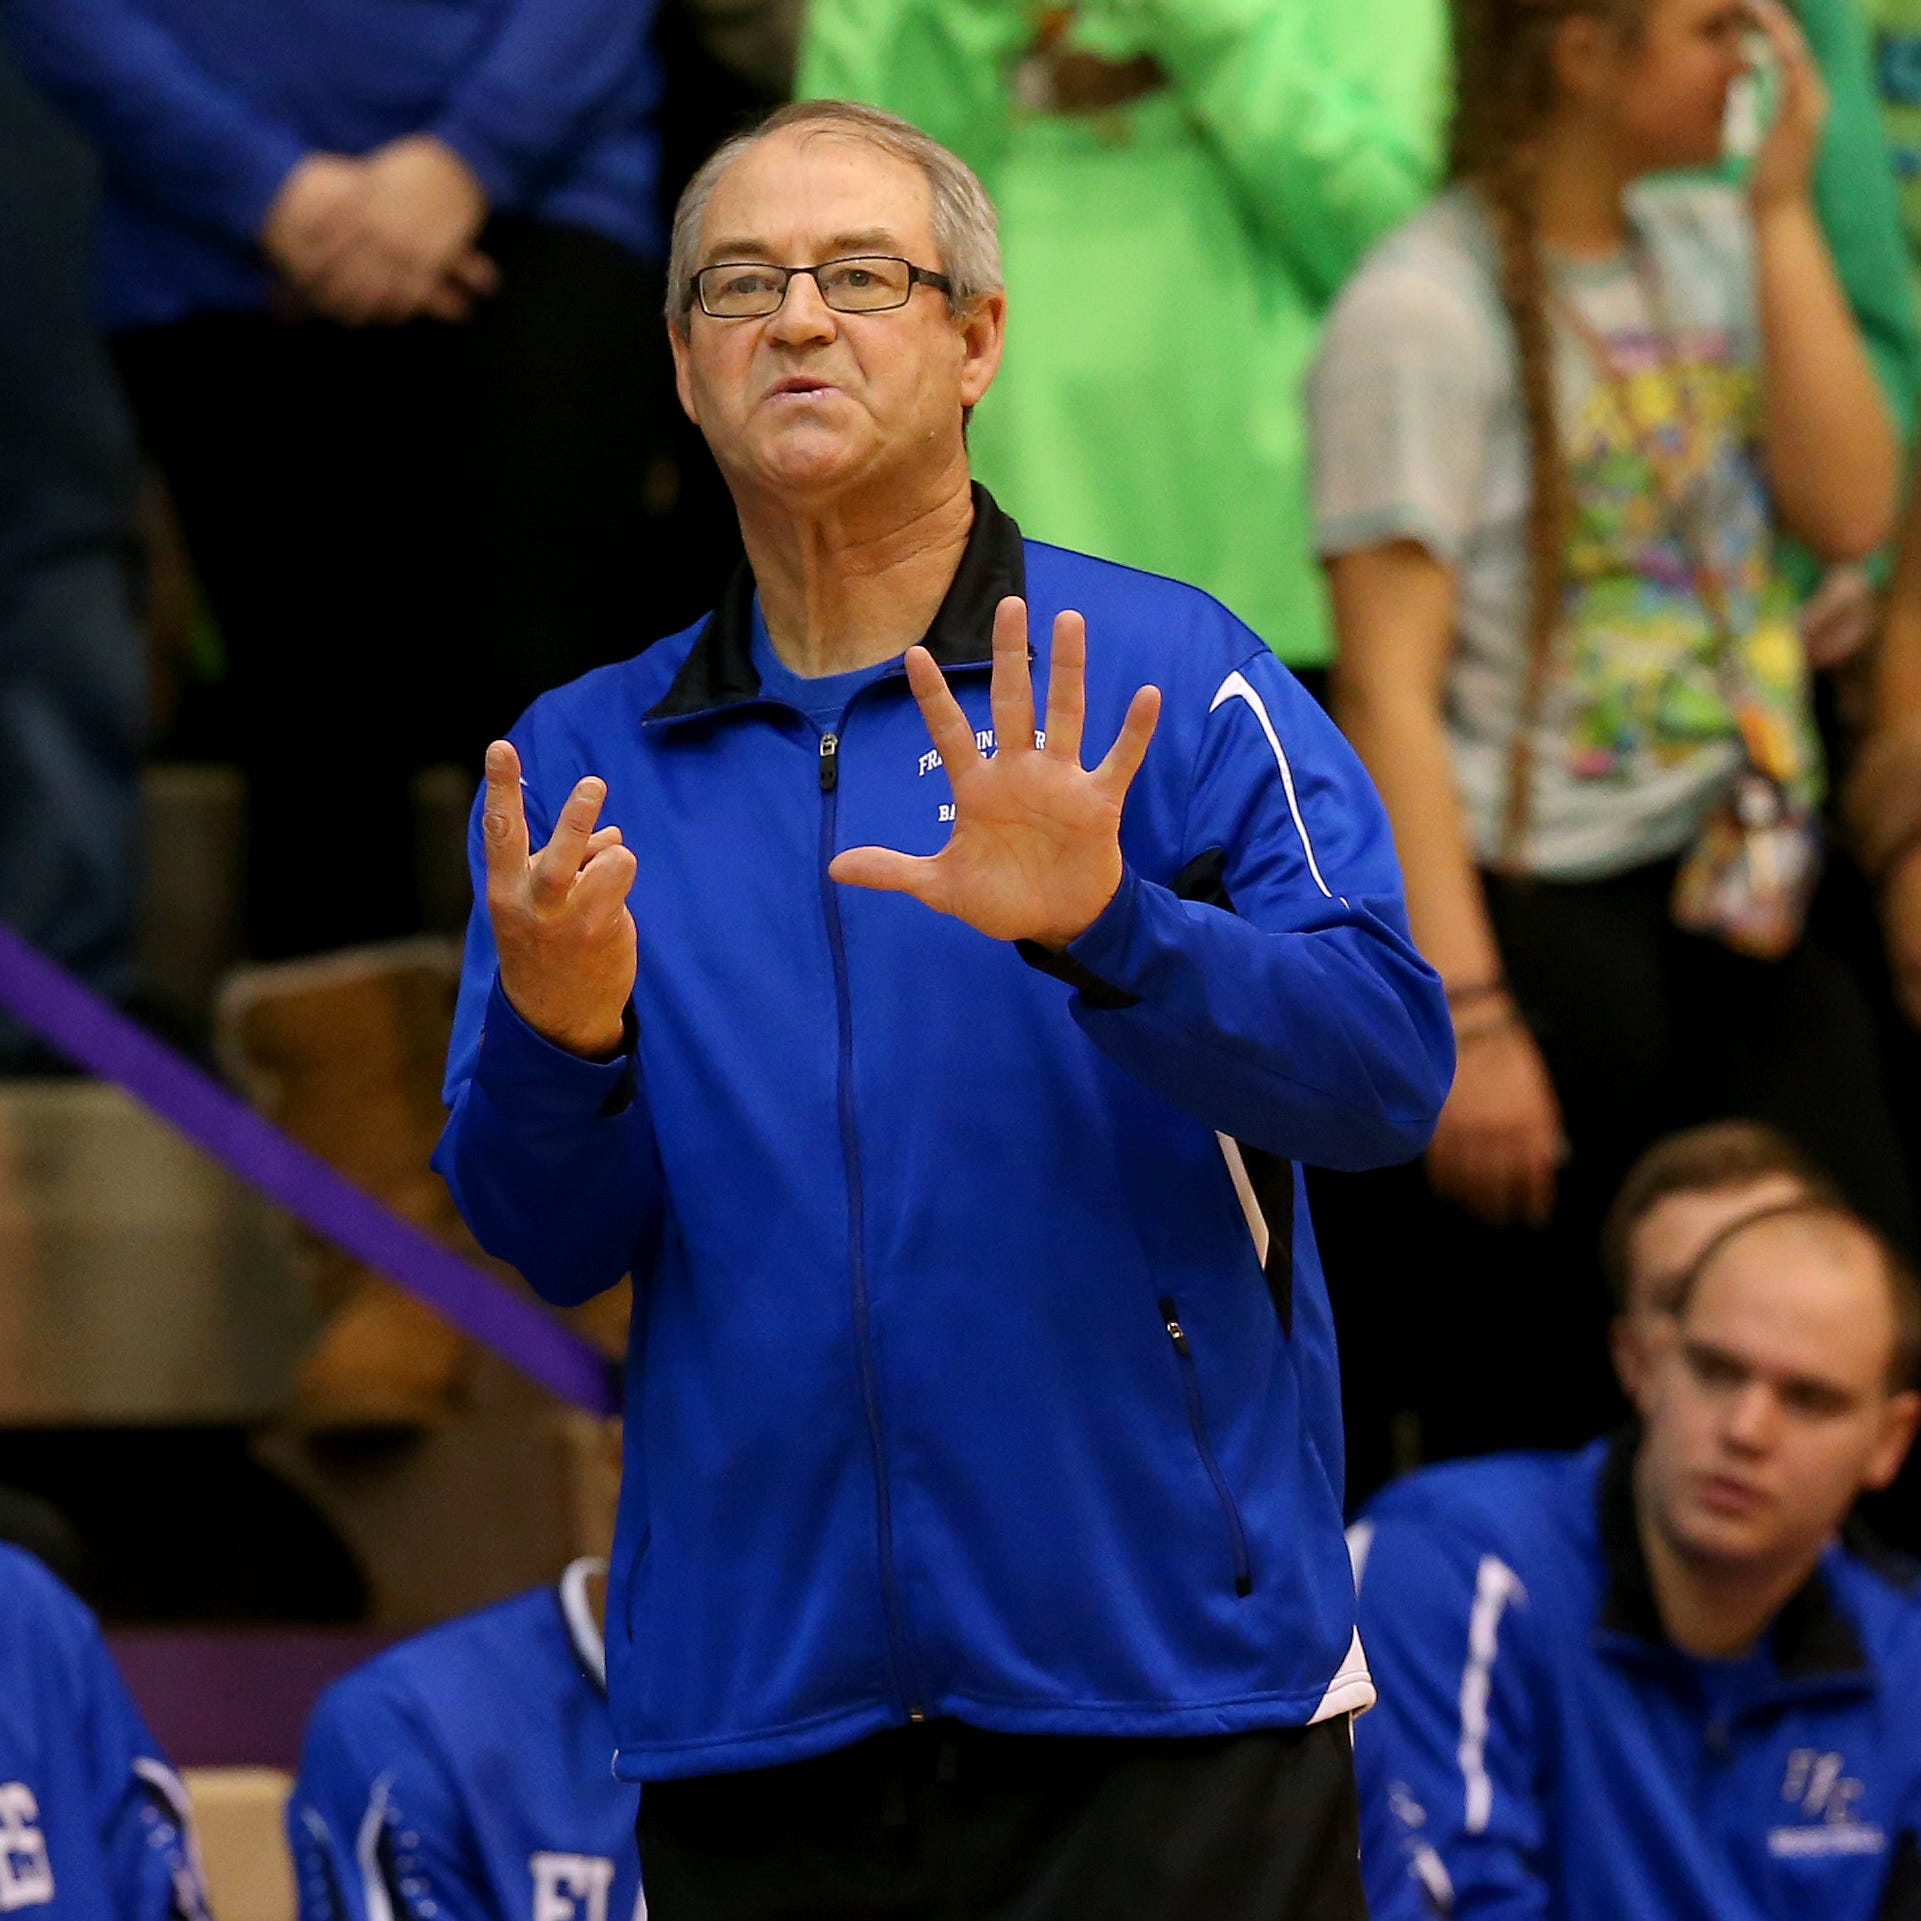 Franklin Central boys basketball coach John Rockey fired